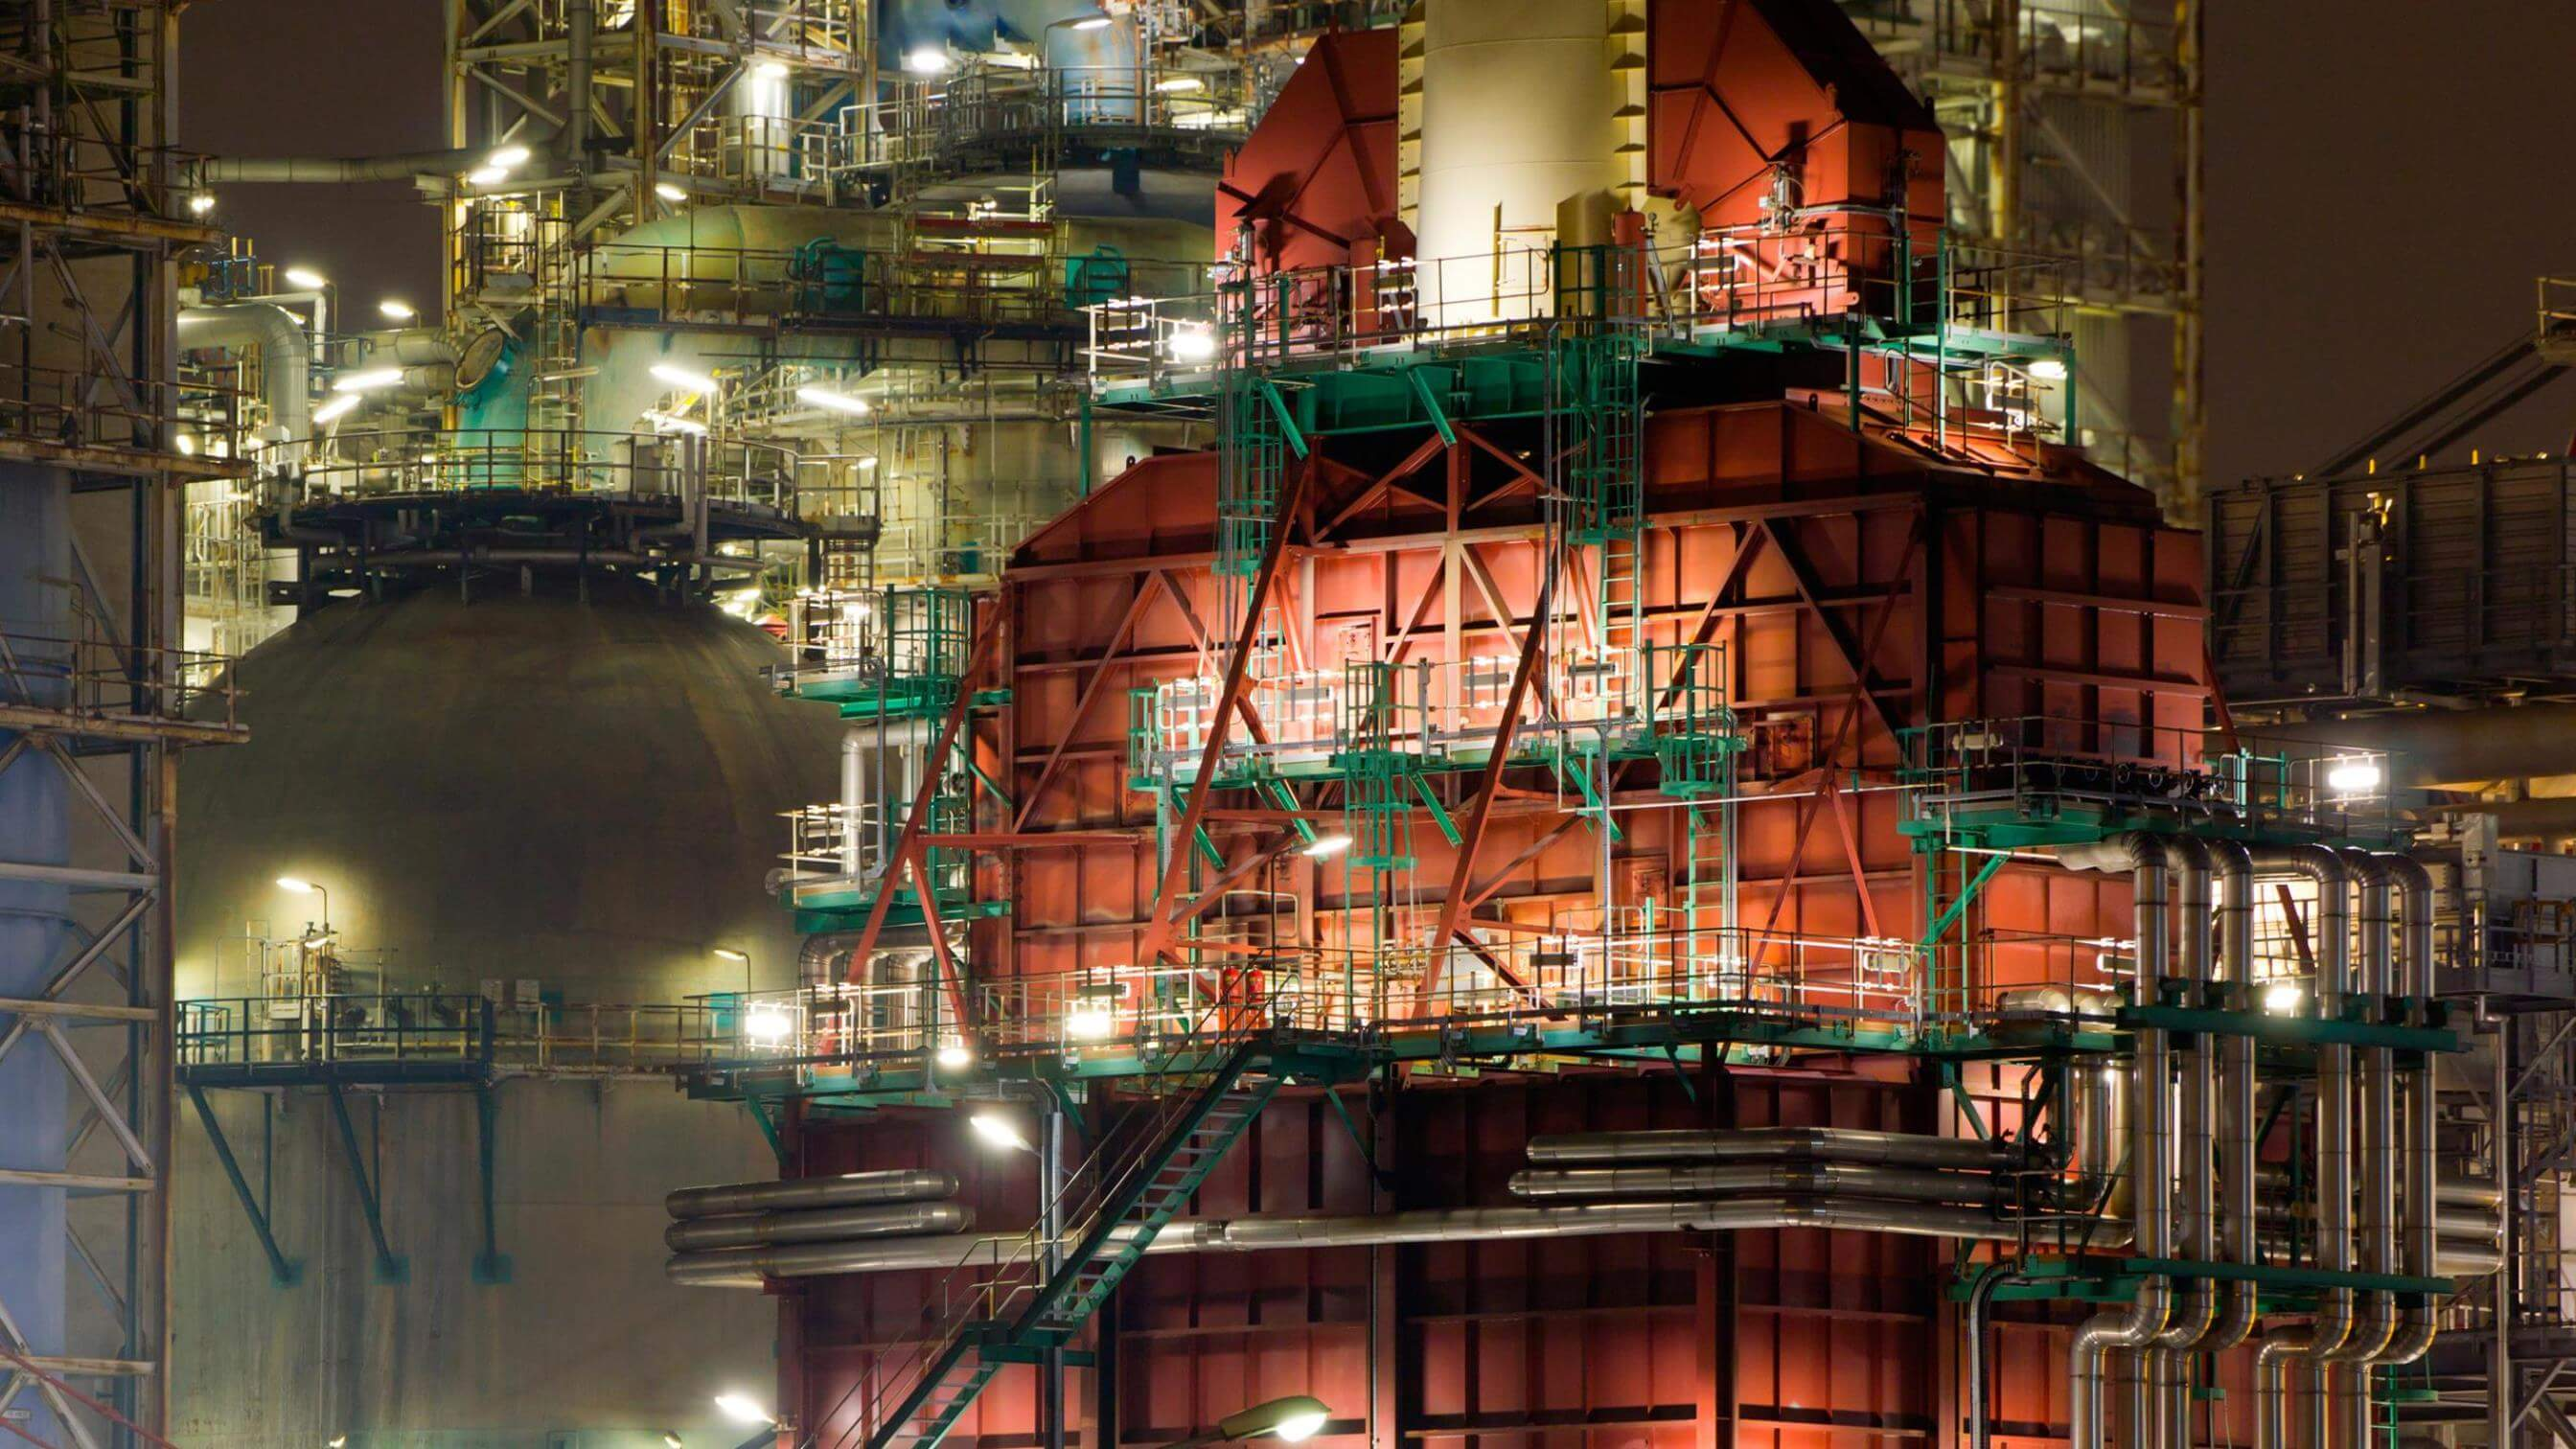 Coker unit at a refinery at night